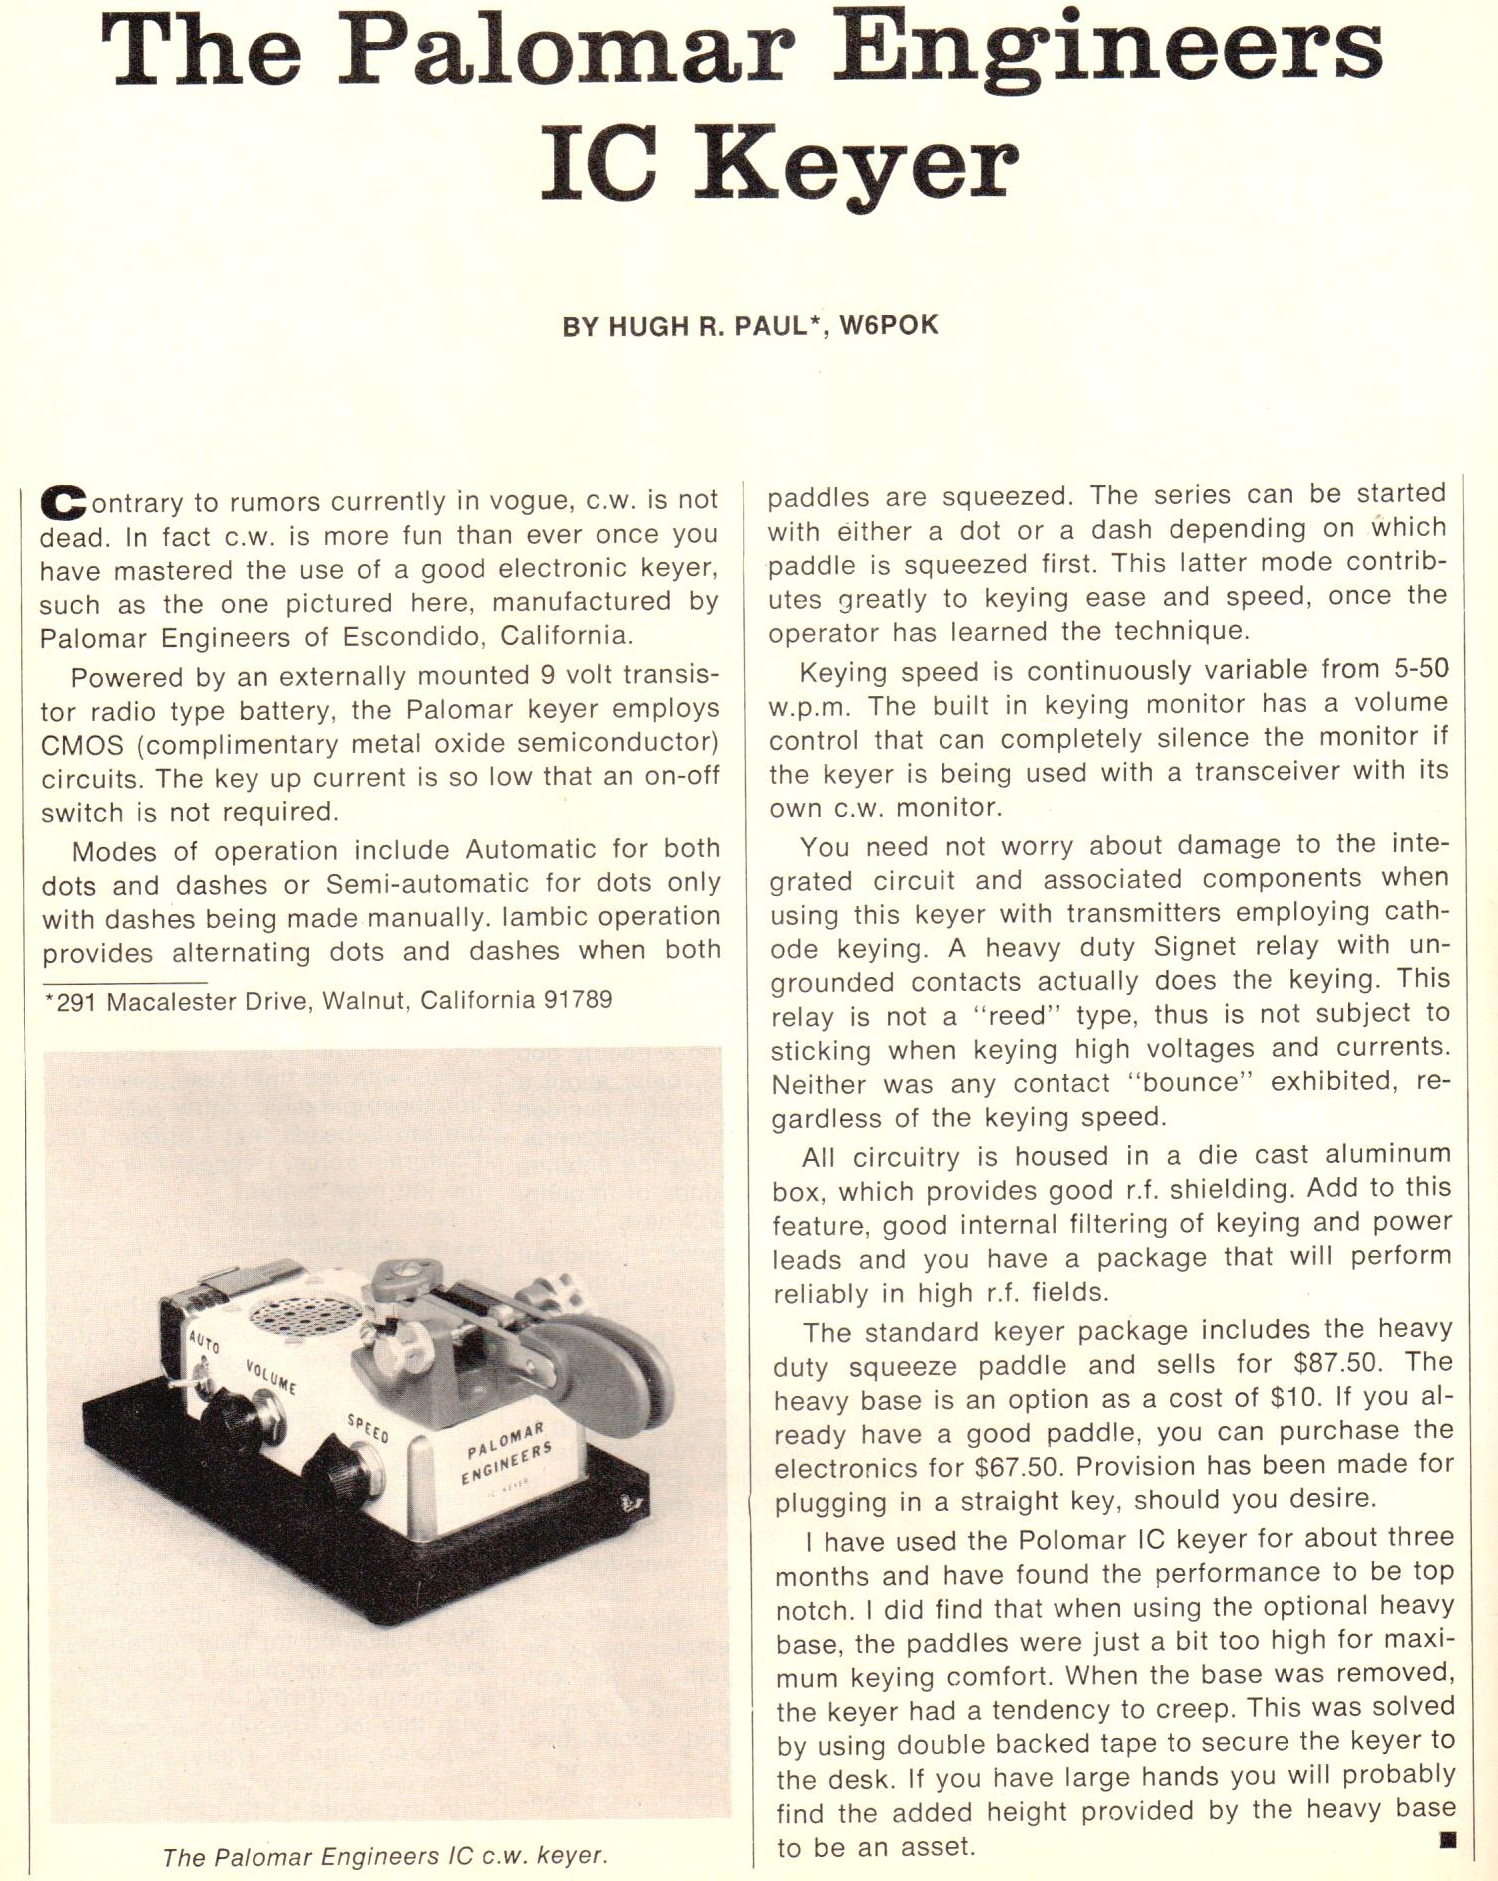 IC Keyer CQ Review March 1977 - IC Keyer